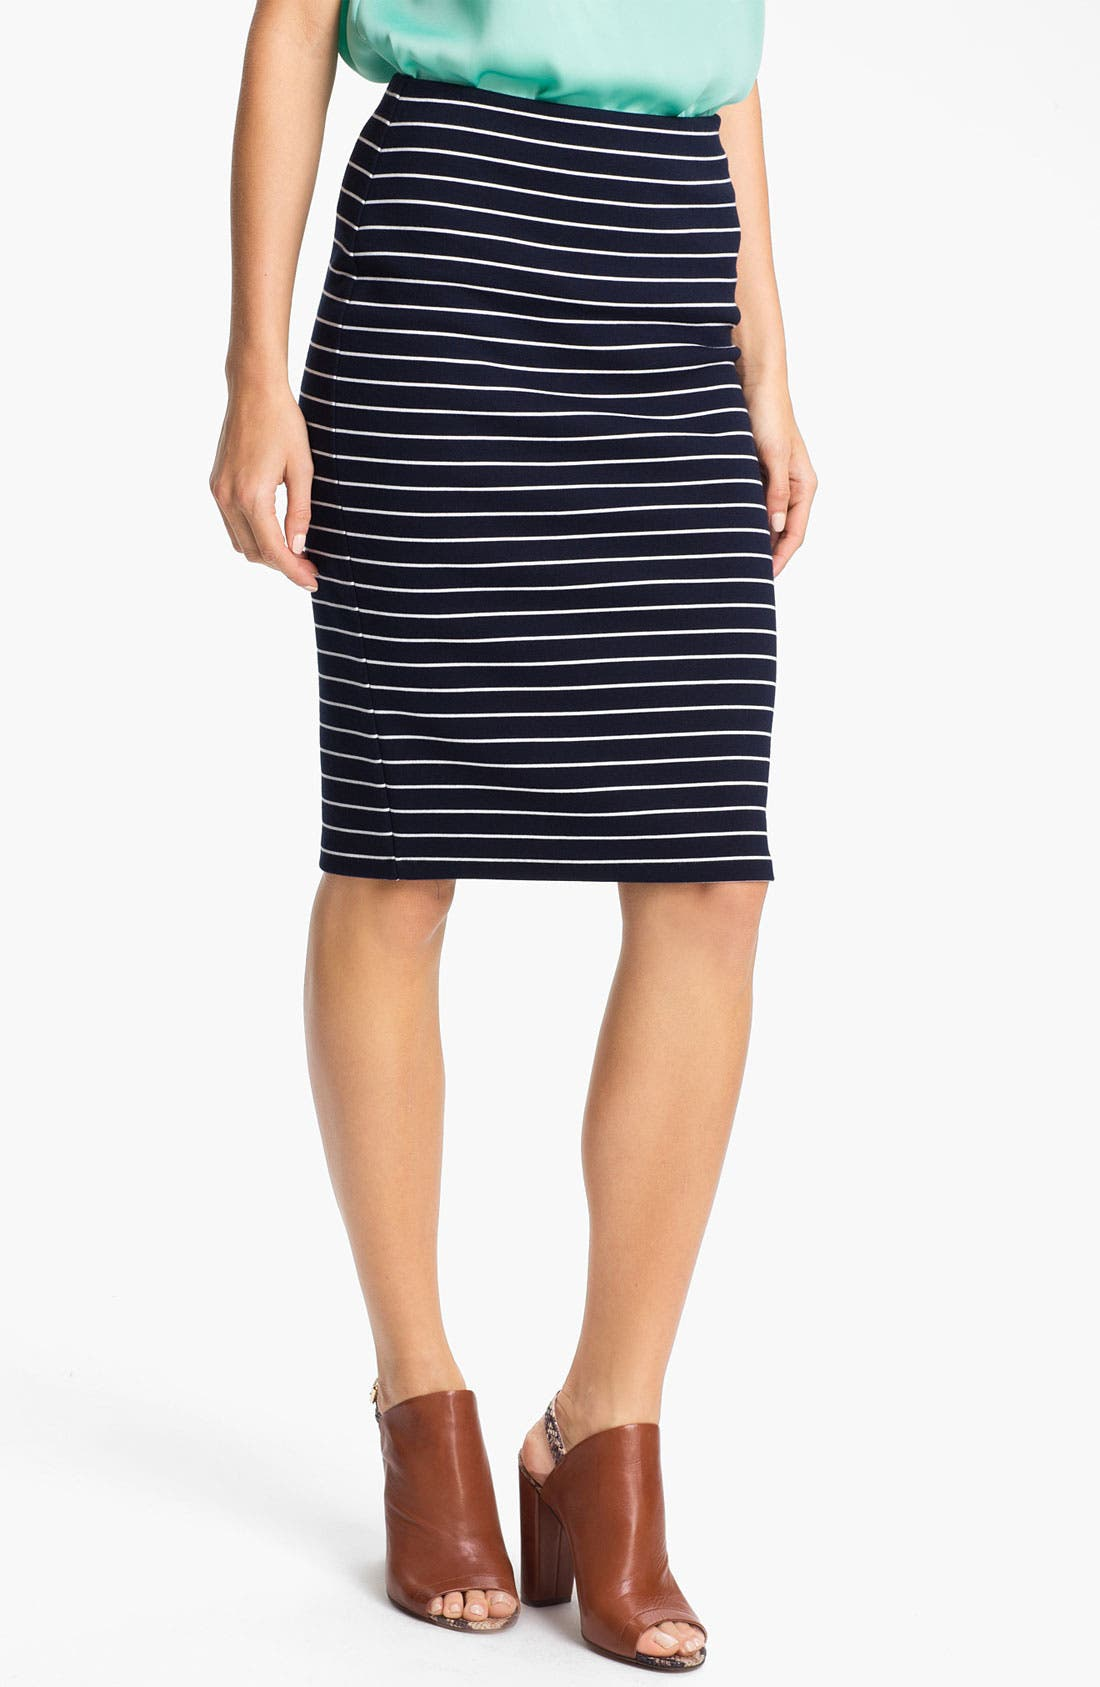 Alternate Image 1 Selected - Vince Camuto Stripe Pencil Skirt